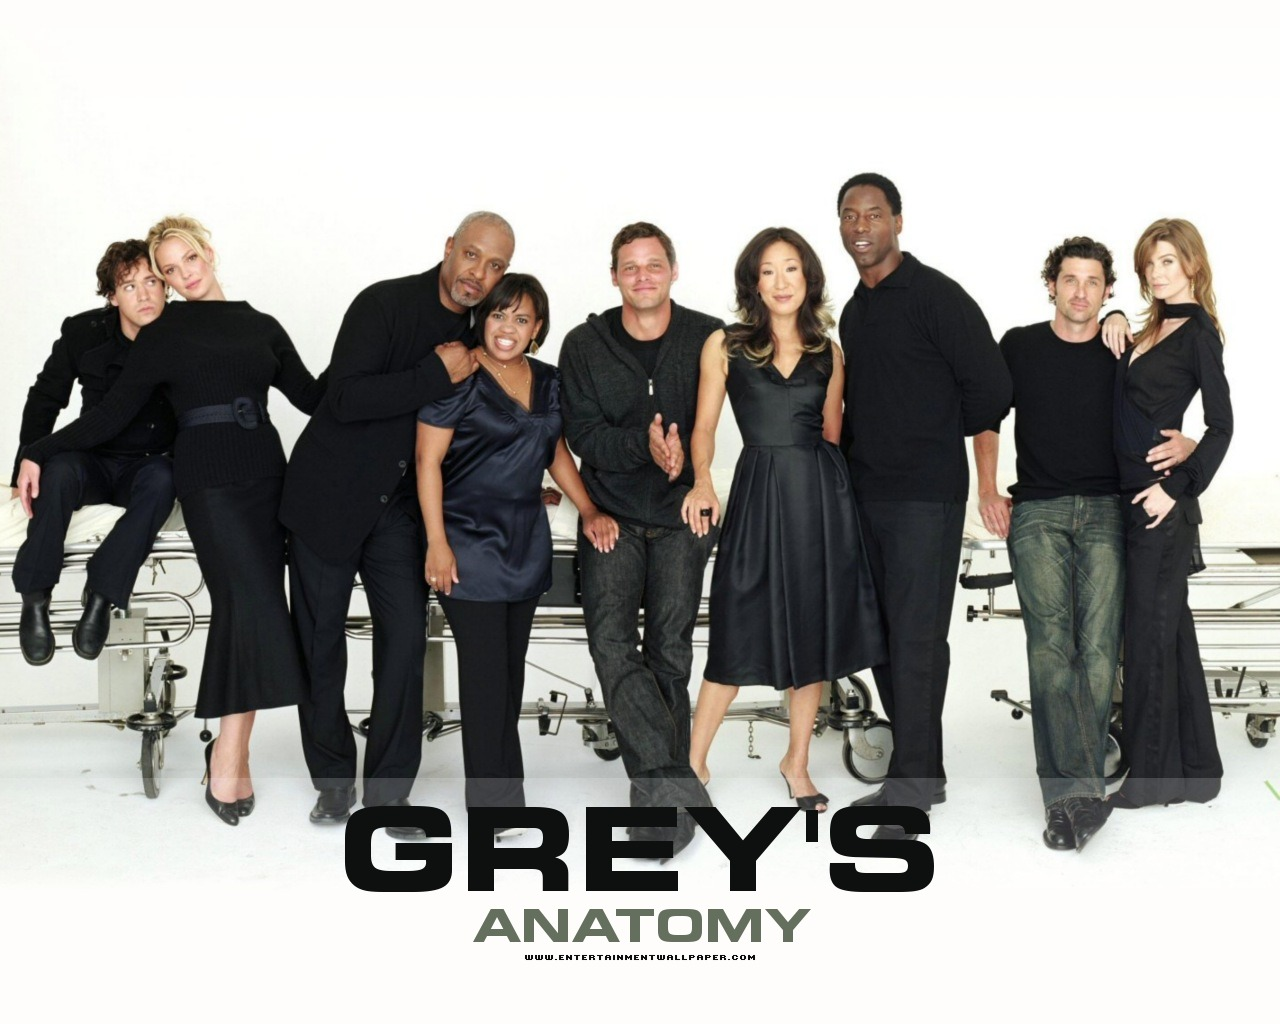 Download Greys Anatomy Blm Rehberi Tantm Wallpaper Kadro 1280x1024